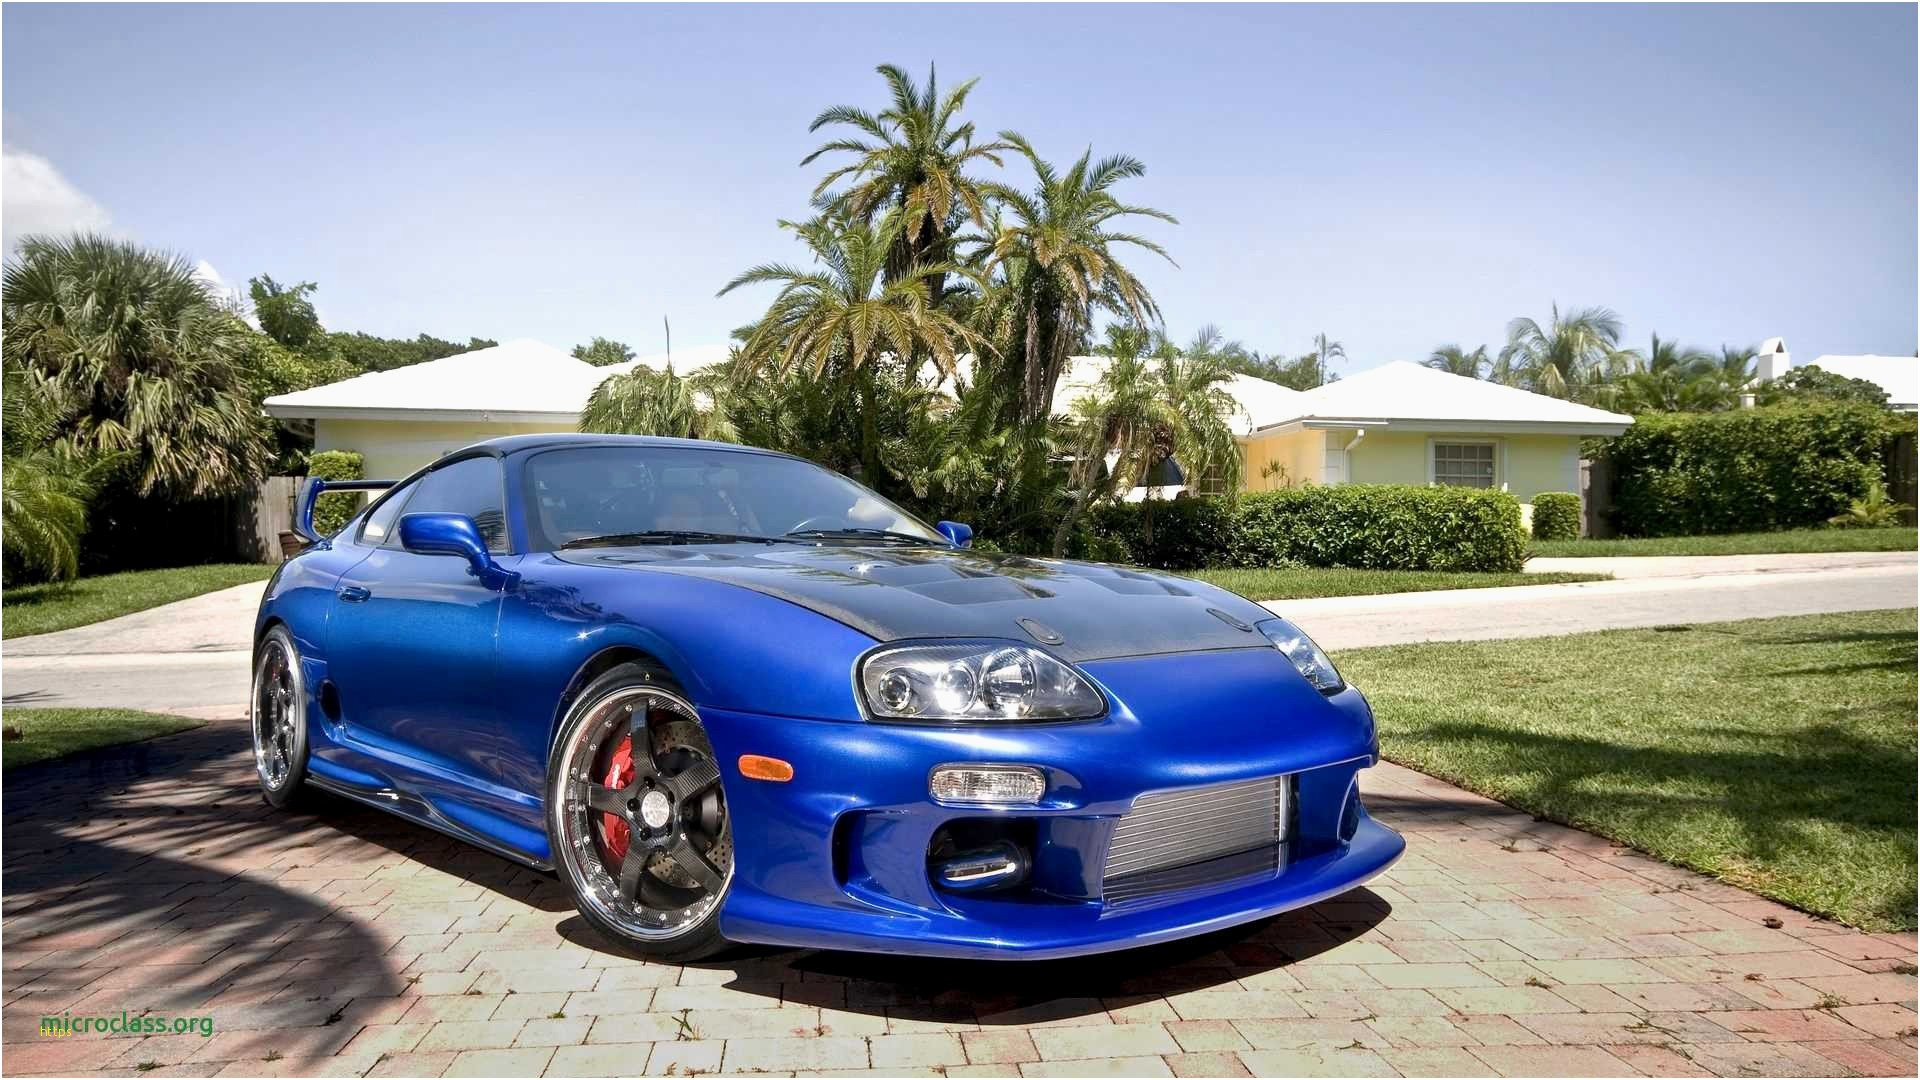 Hd Wallpapers 1920×1080 Riddler Custom Car Beautiful - Toyota Supra Full Hd , HD Wallpaper & Backgrounds